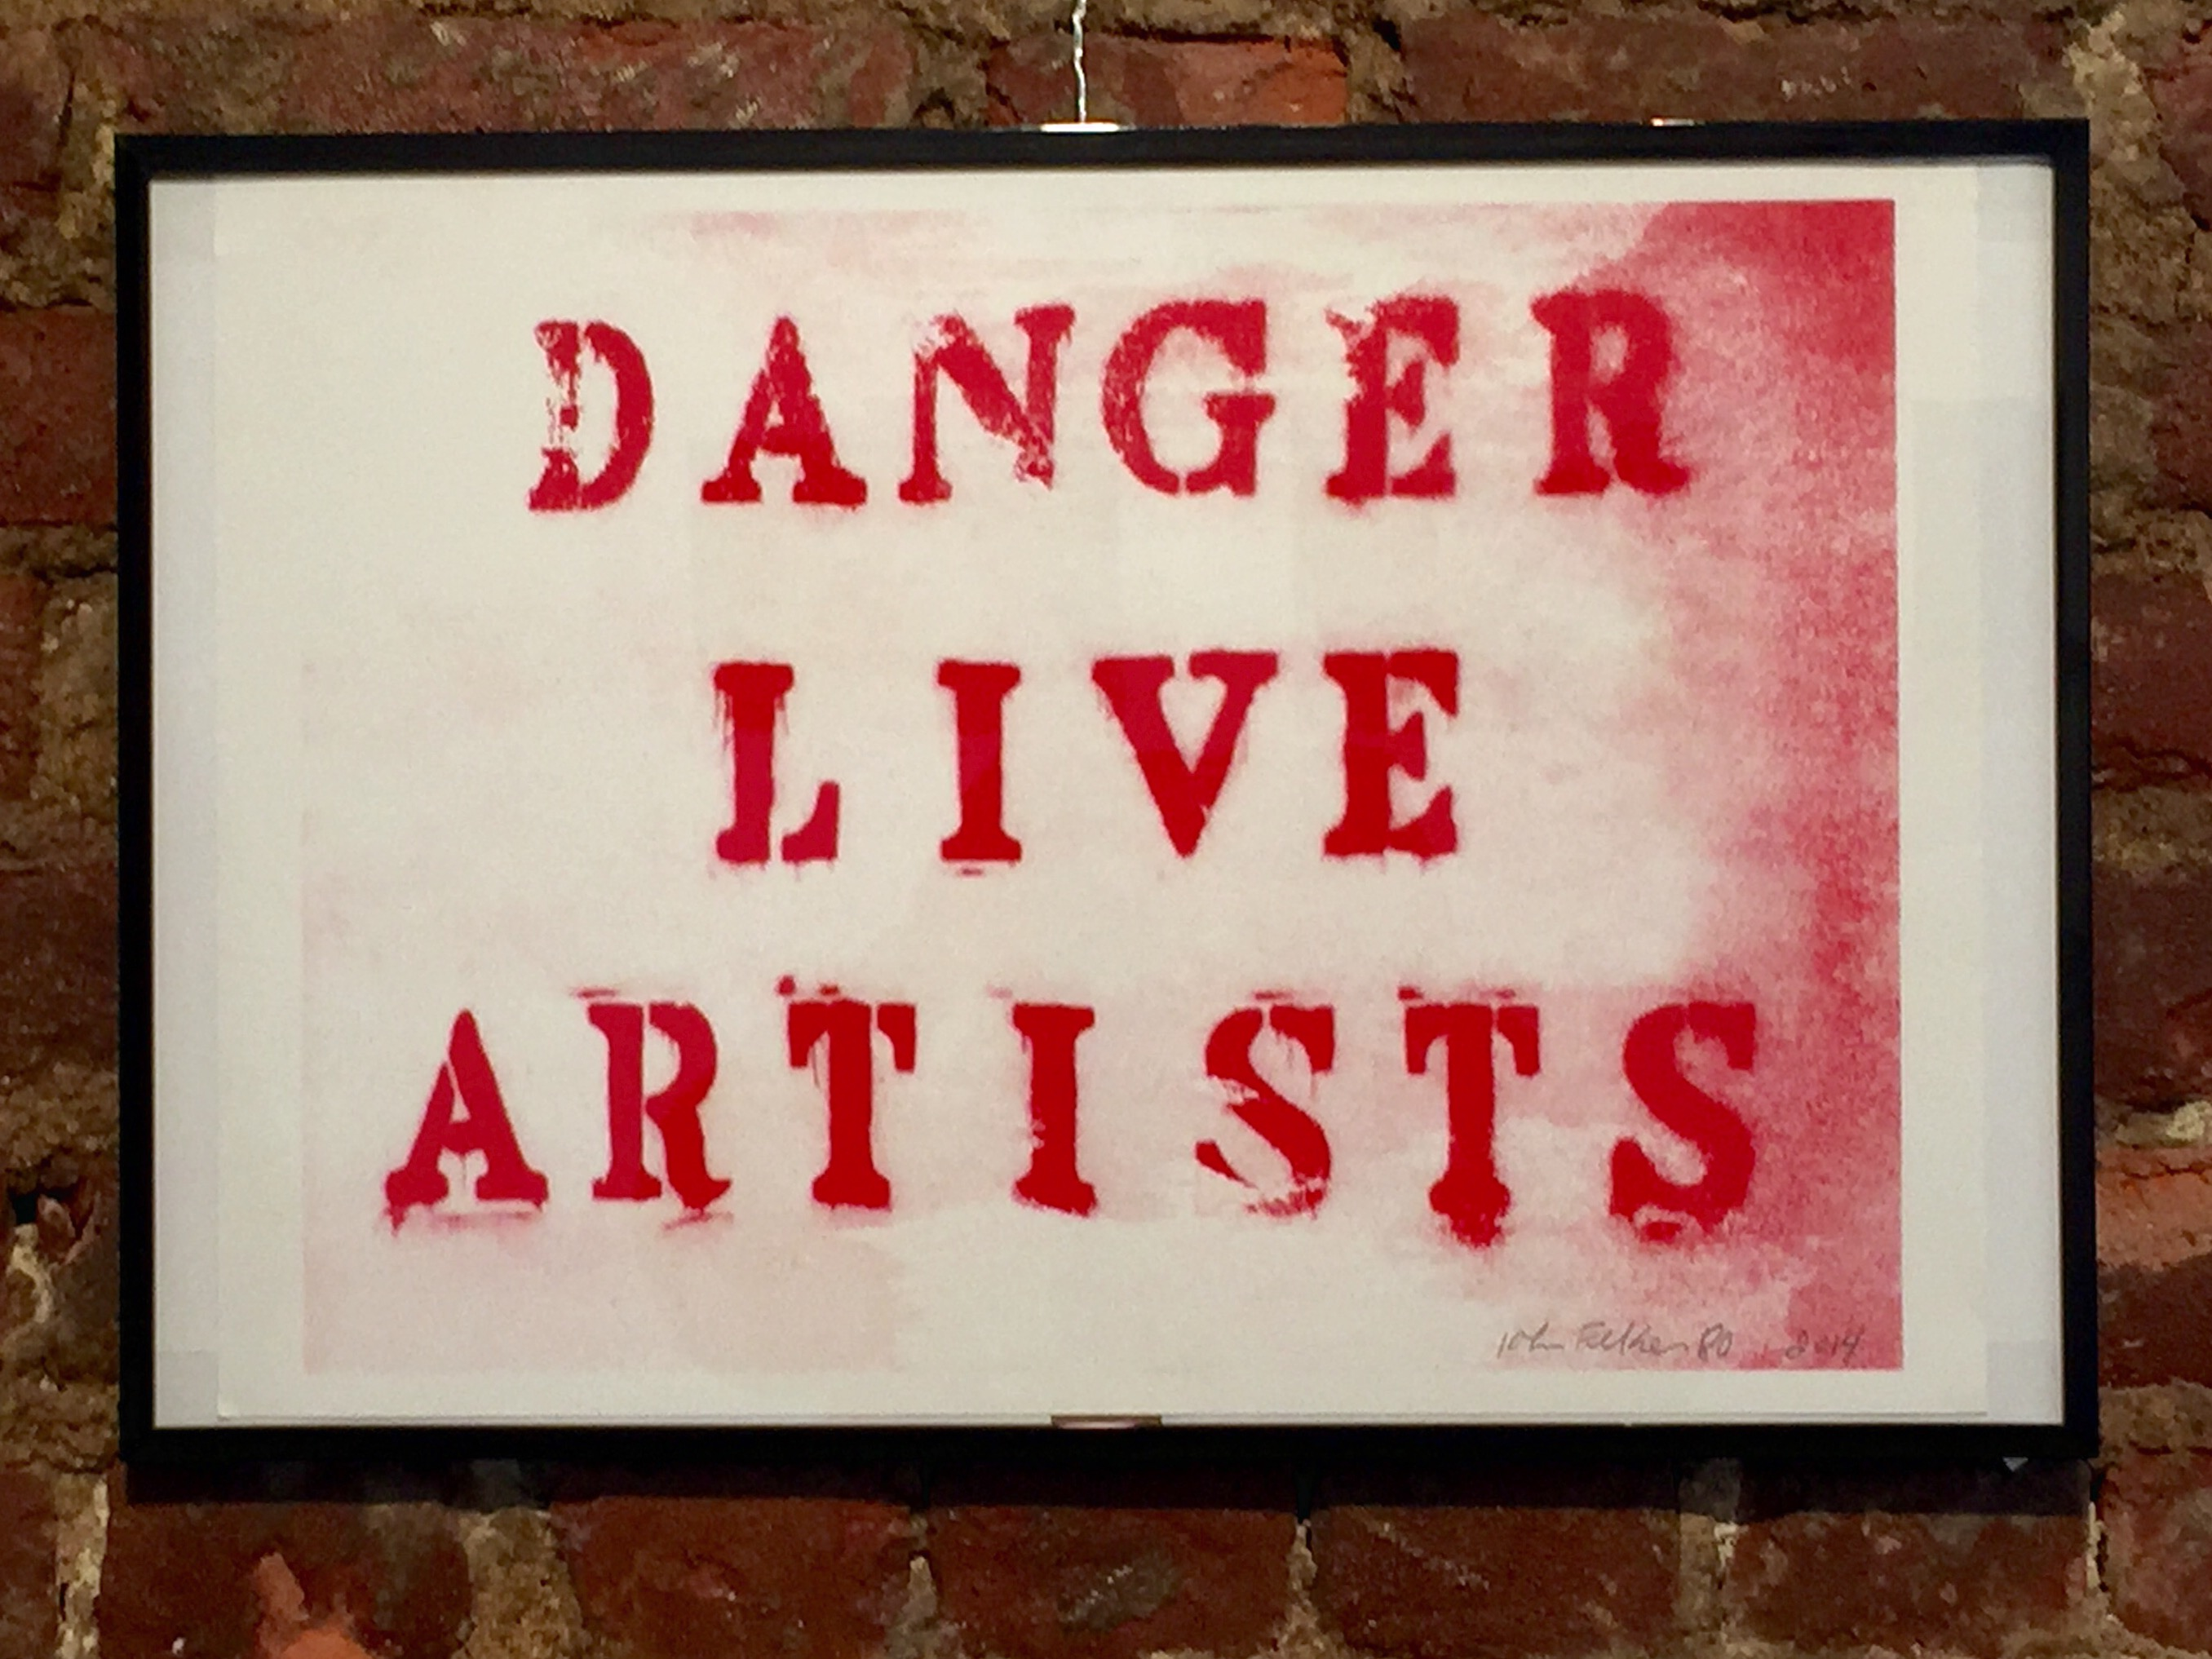 Danger Live Artists - John Fekner